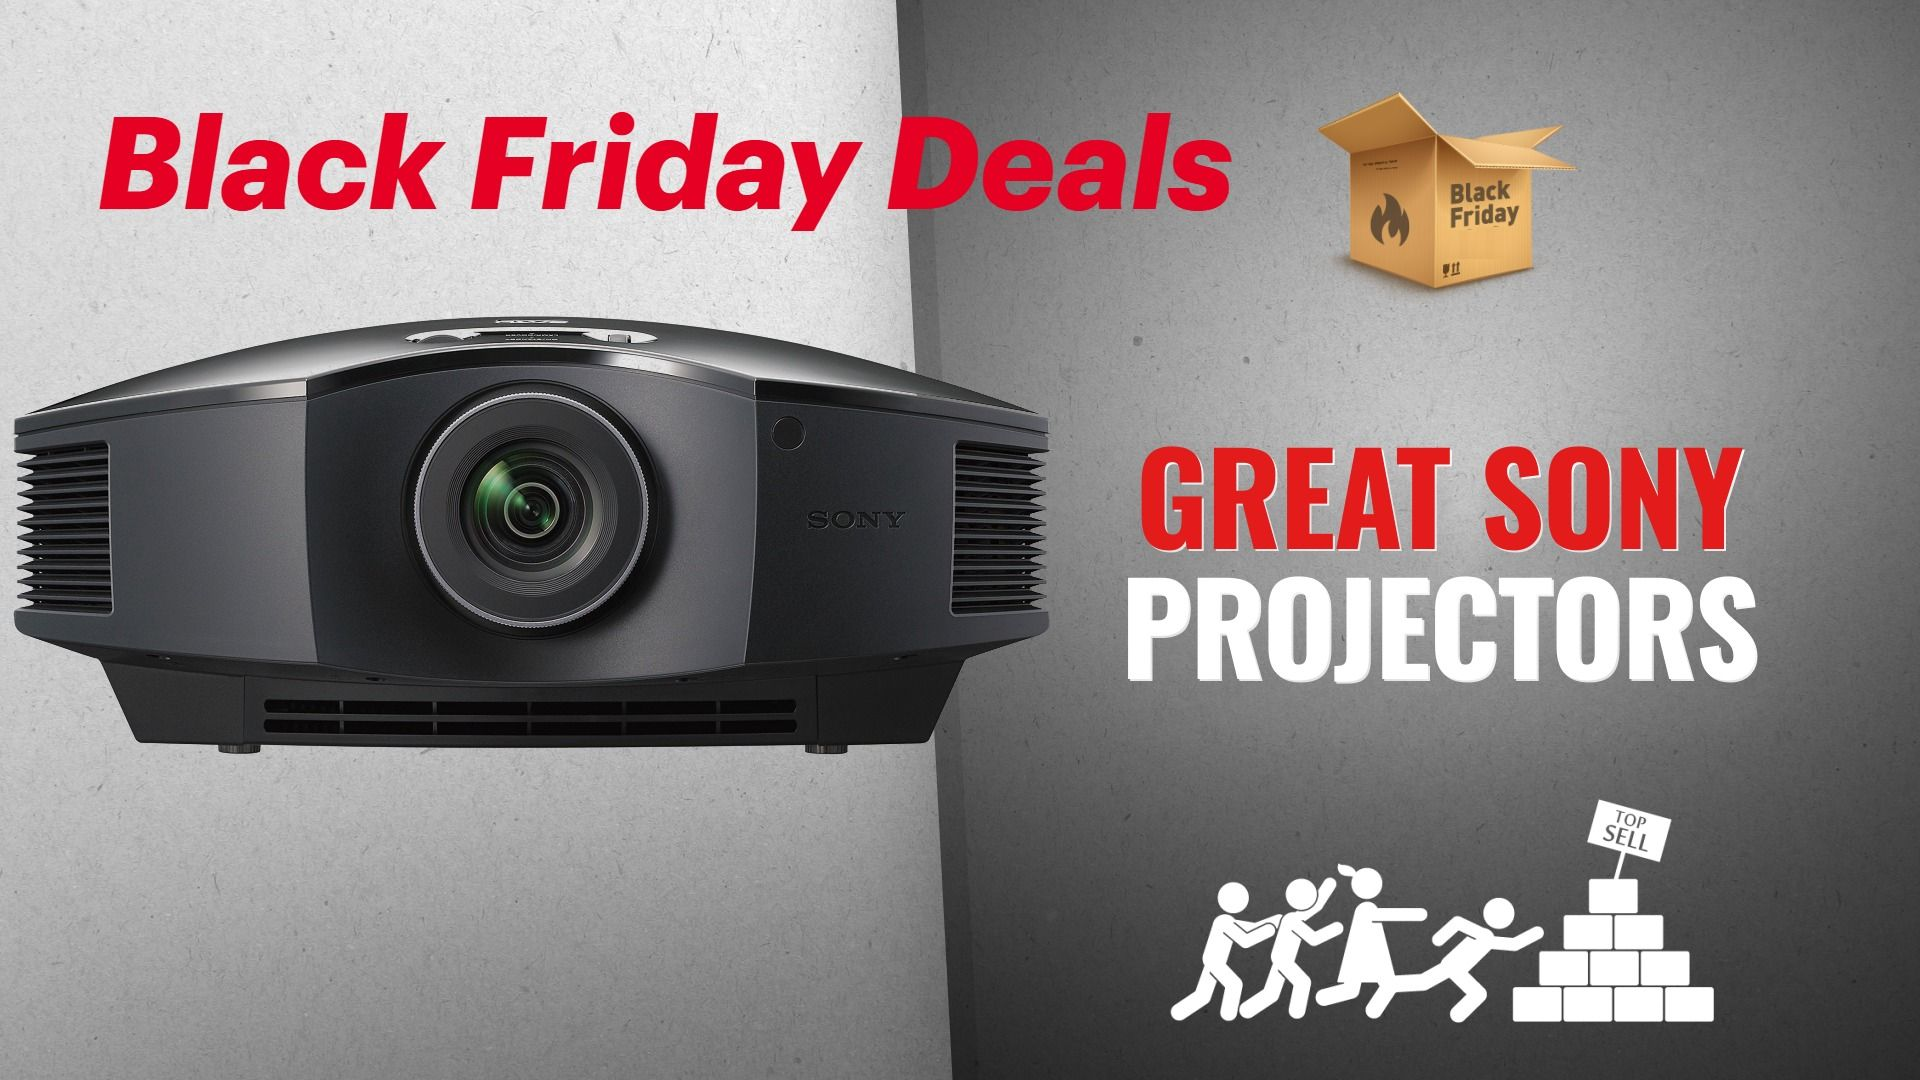 Black Friday Projector Deals 2019 & Cyber Monday Best